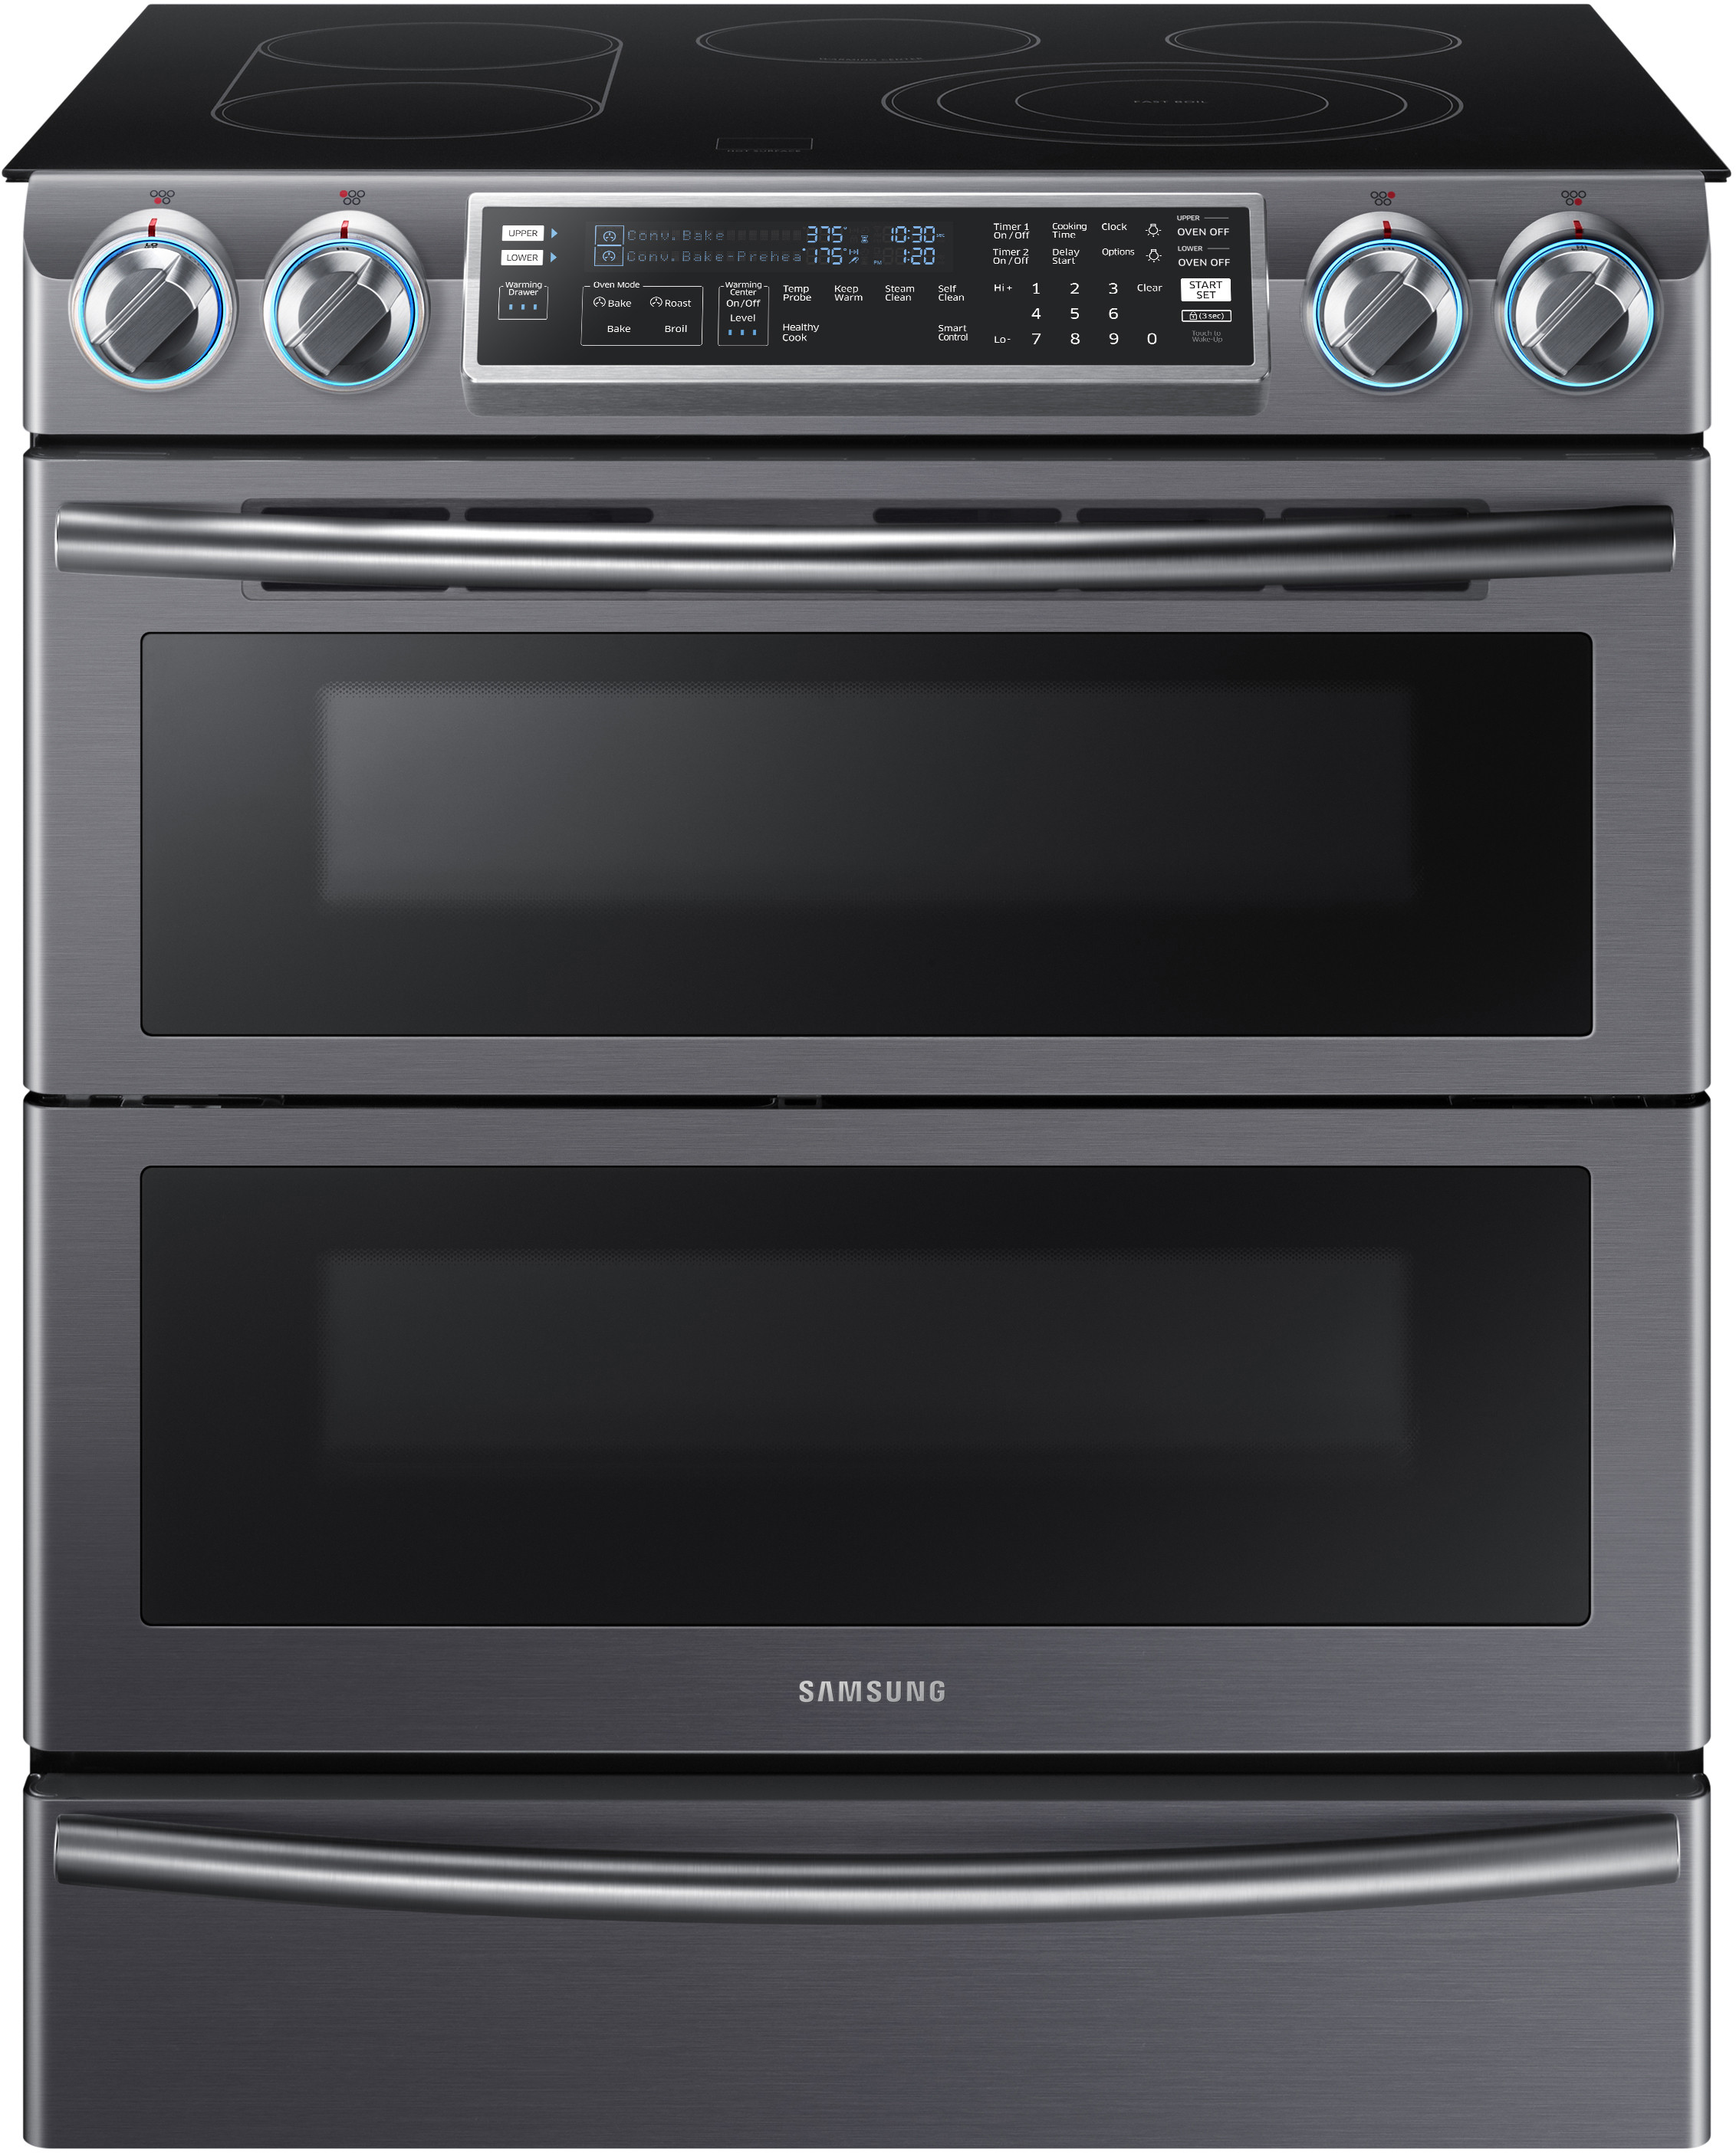 Samsung Ne58k9850wg 30 Inch Flex Duo Slide In Electric Range With Soft Close Dual Door 5 Heating Elements 8 Cu Ft Convection Oven Blue Led S